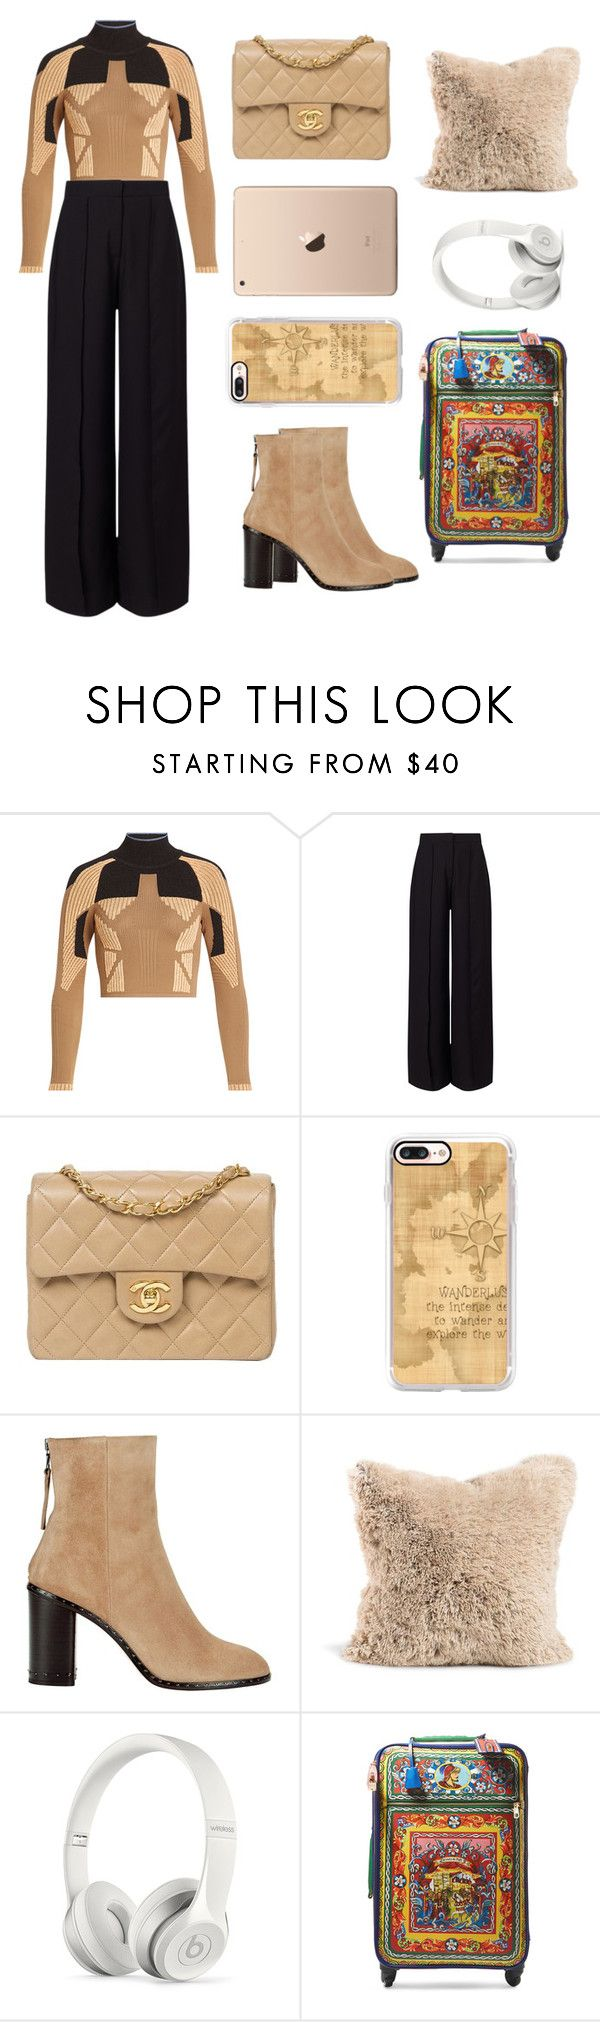 """Sweet Children."" by a-mess-of-a-dreamer ❤ liked on Polyvore featuring adidas Originals, Miss Selfridge, Chanel, Casetify, rag & bone, Beats by Dr. Dre and Dolce&Gabbana"